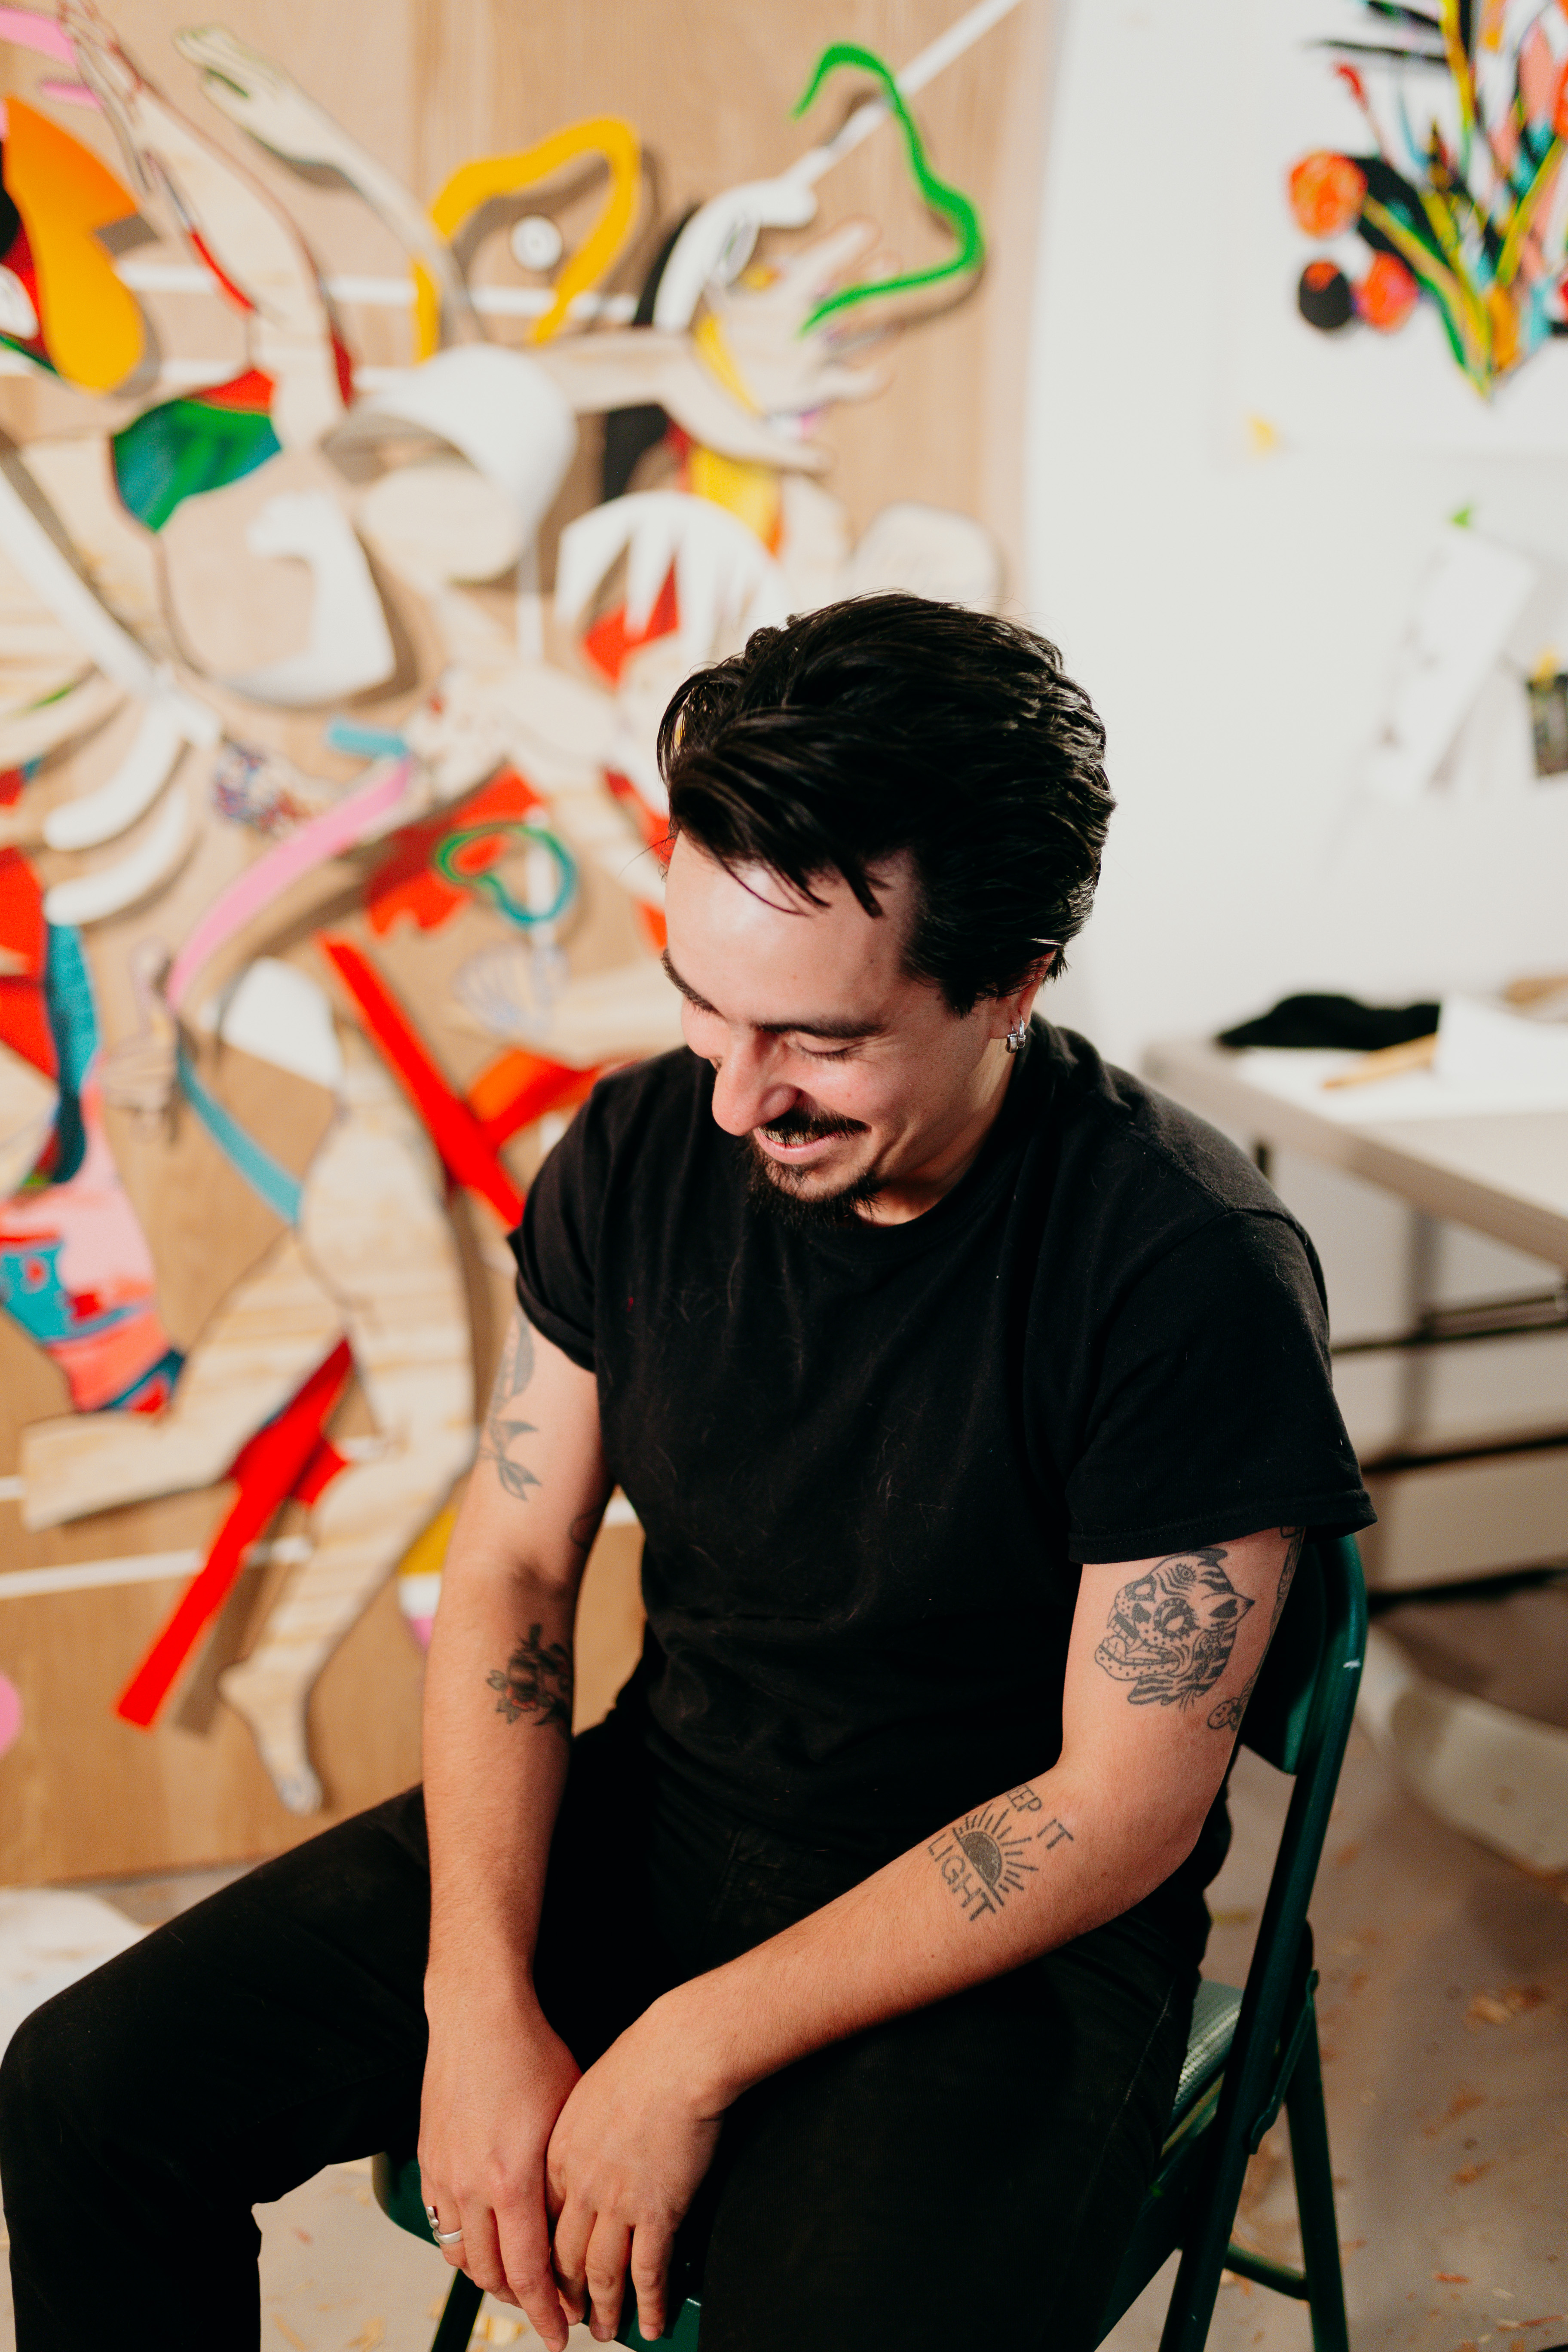 Portrait of a man sitting on a chair in a studio space. He is wearing a black t shirt and black pants. He is mid laugh